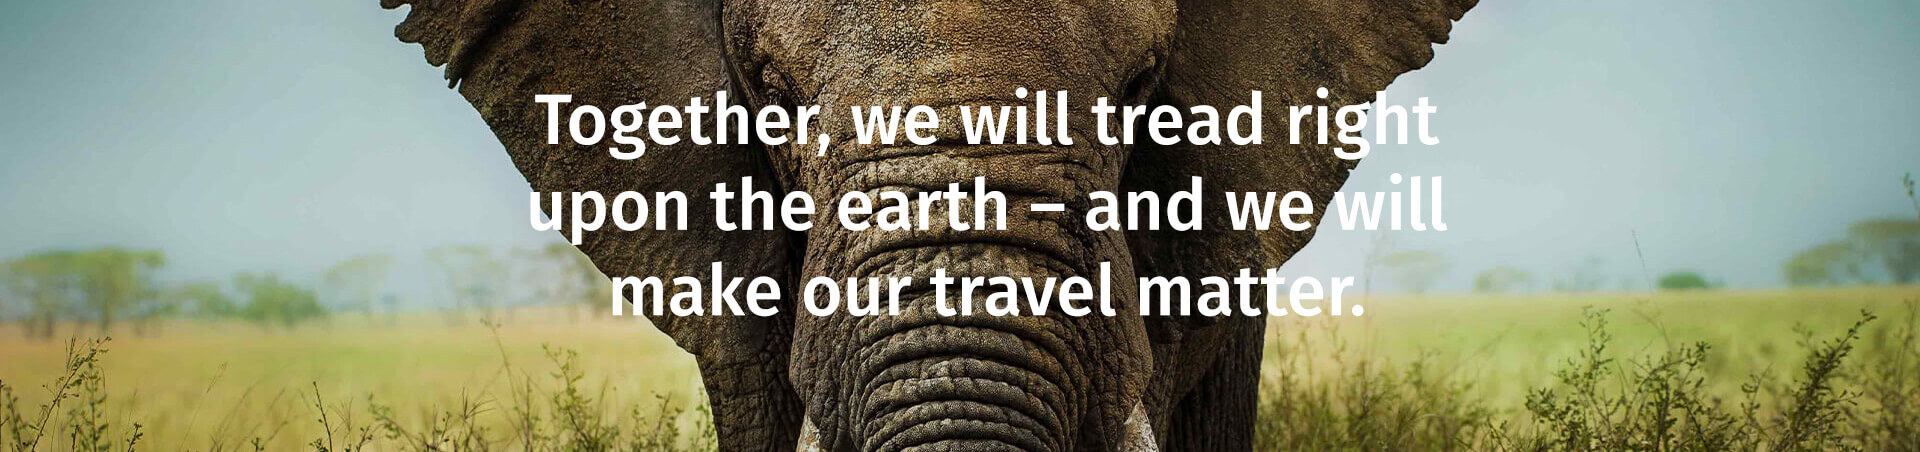 Make Travel Matter - Elephant Closeup